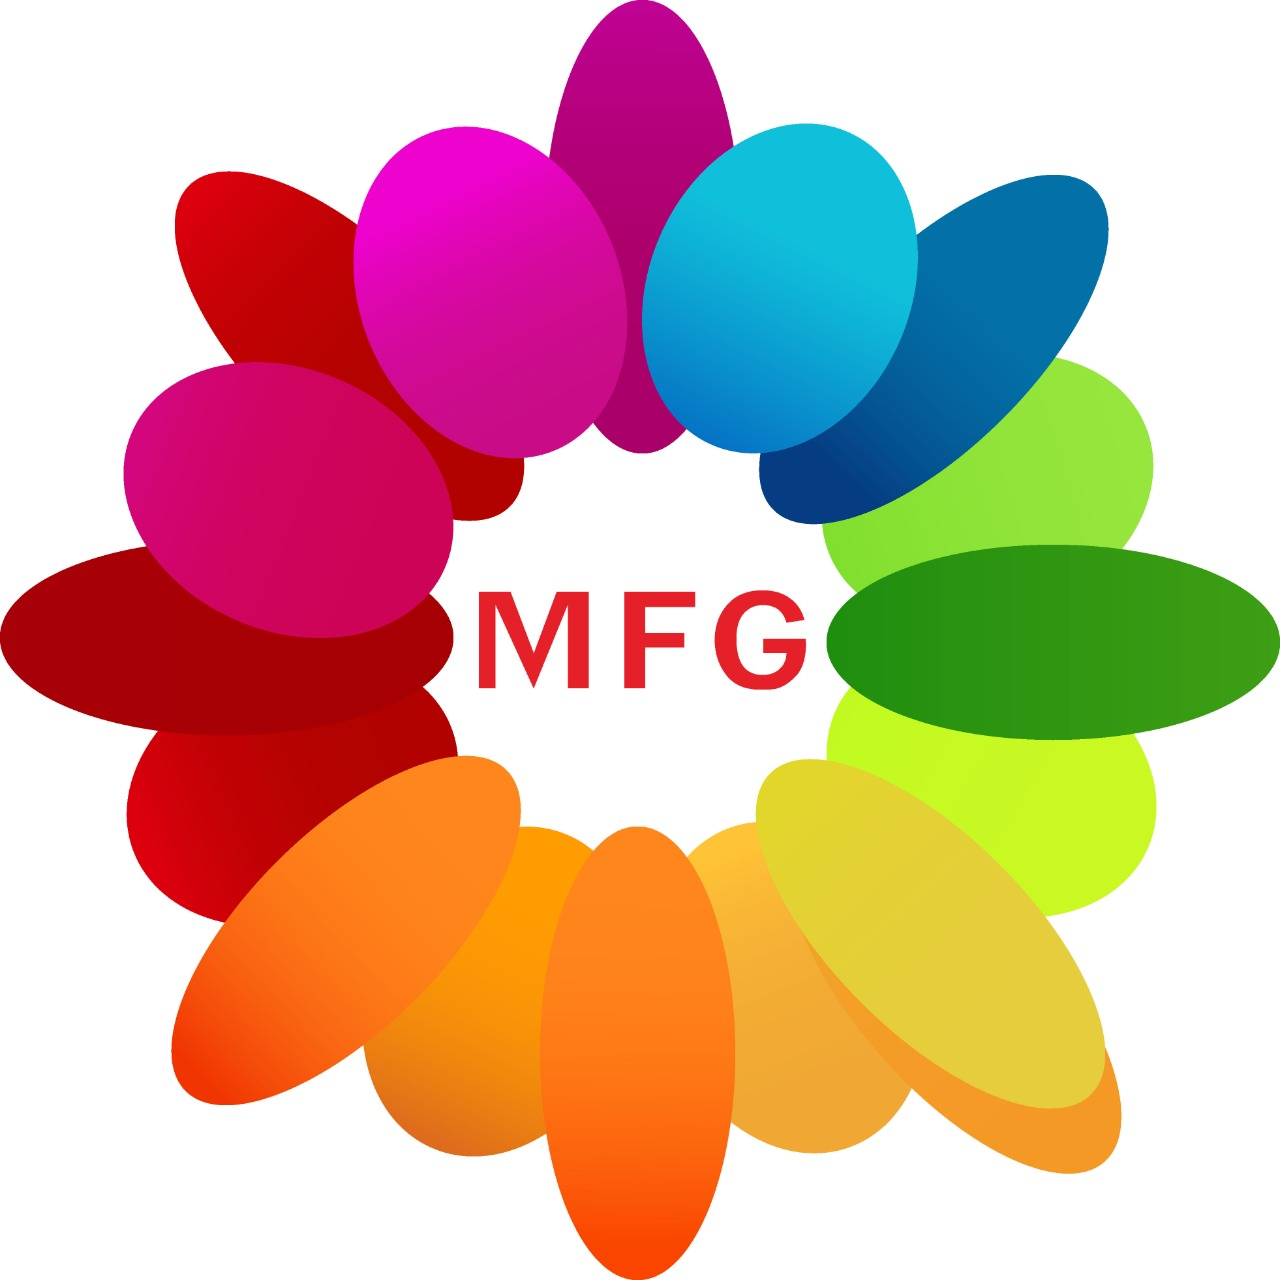 Box Of Cookies With 24 pcs Ferrero Rocher Chocolates With Santa Clause Toy